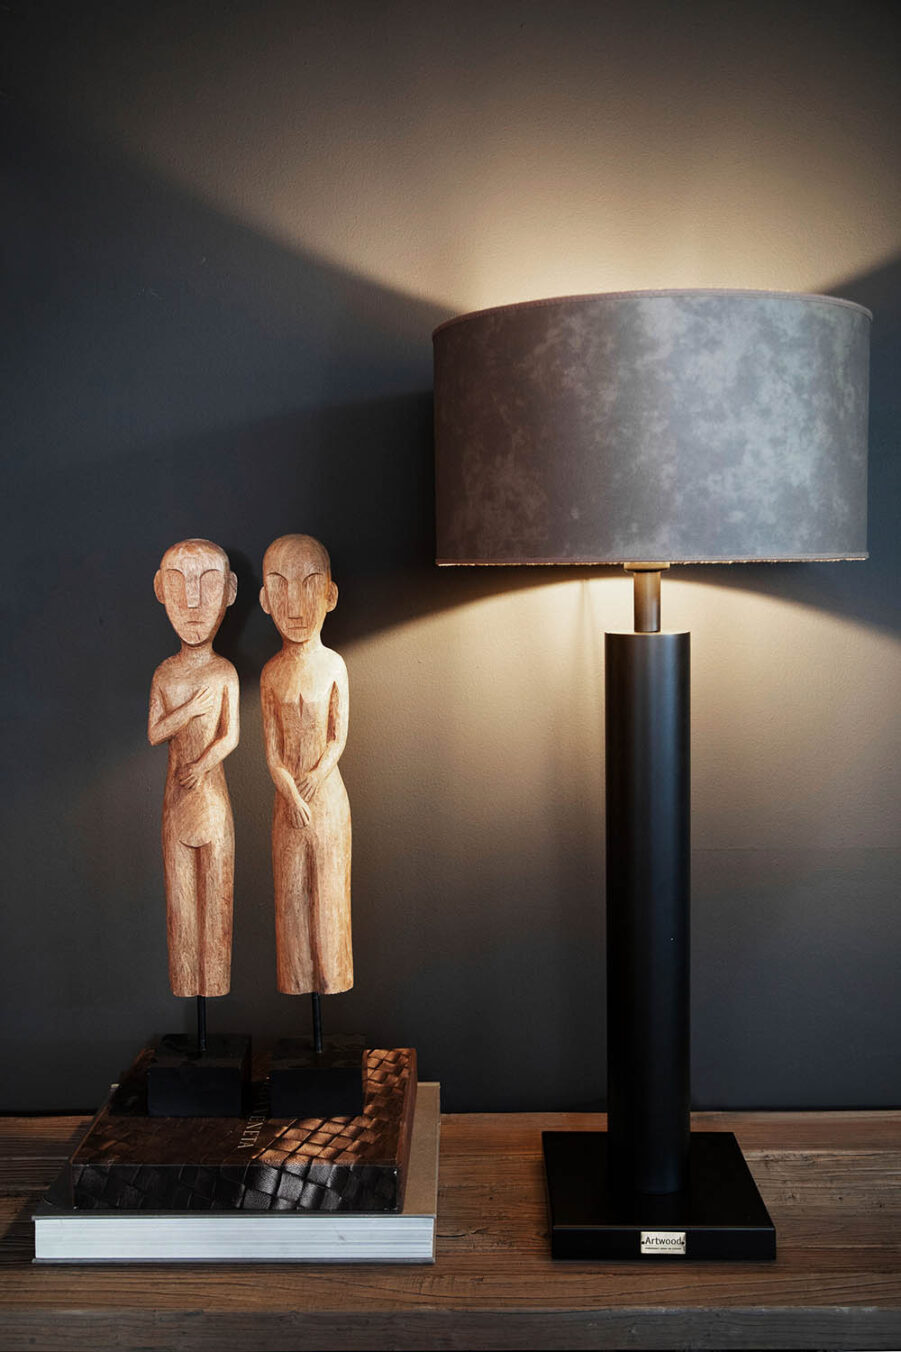 Milan lampa med leather taupe lampskärm.